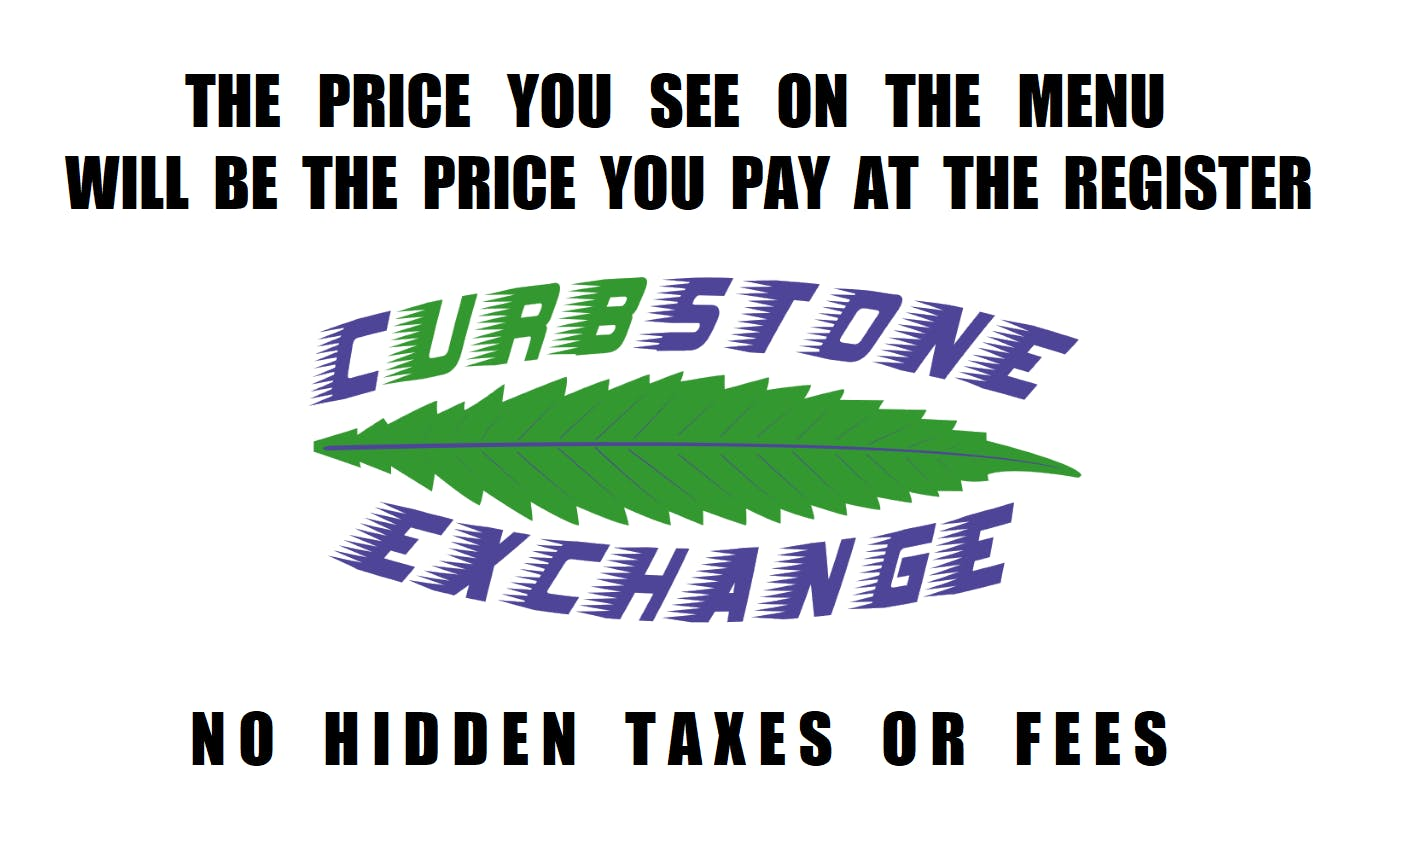 indica-prices-on-menu-3d-prices-in-store